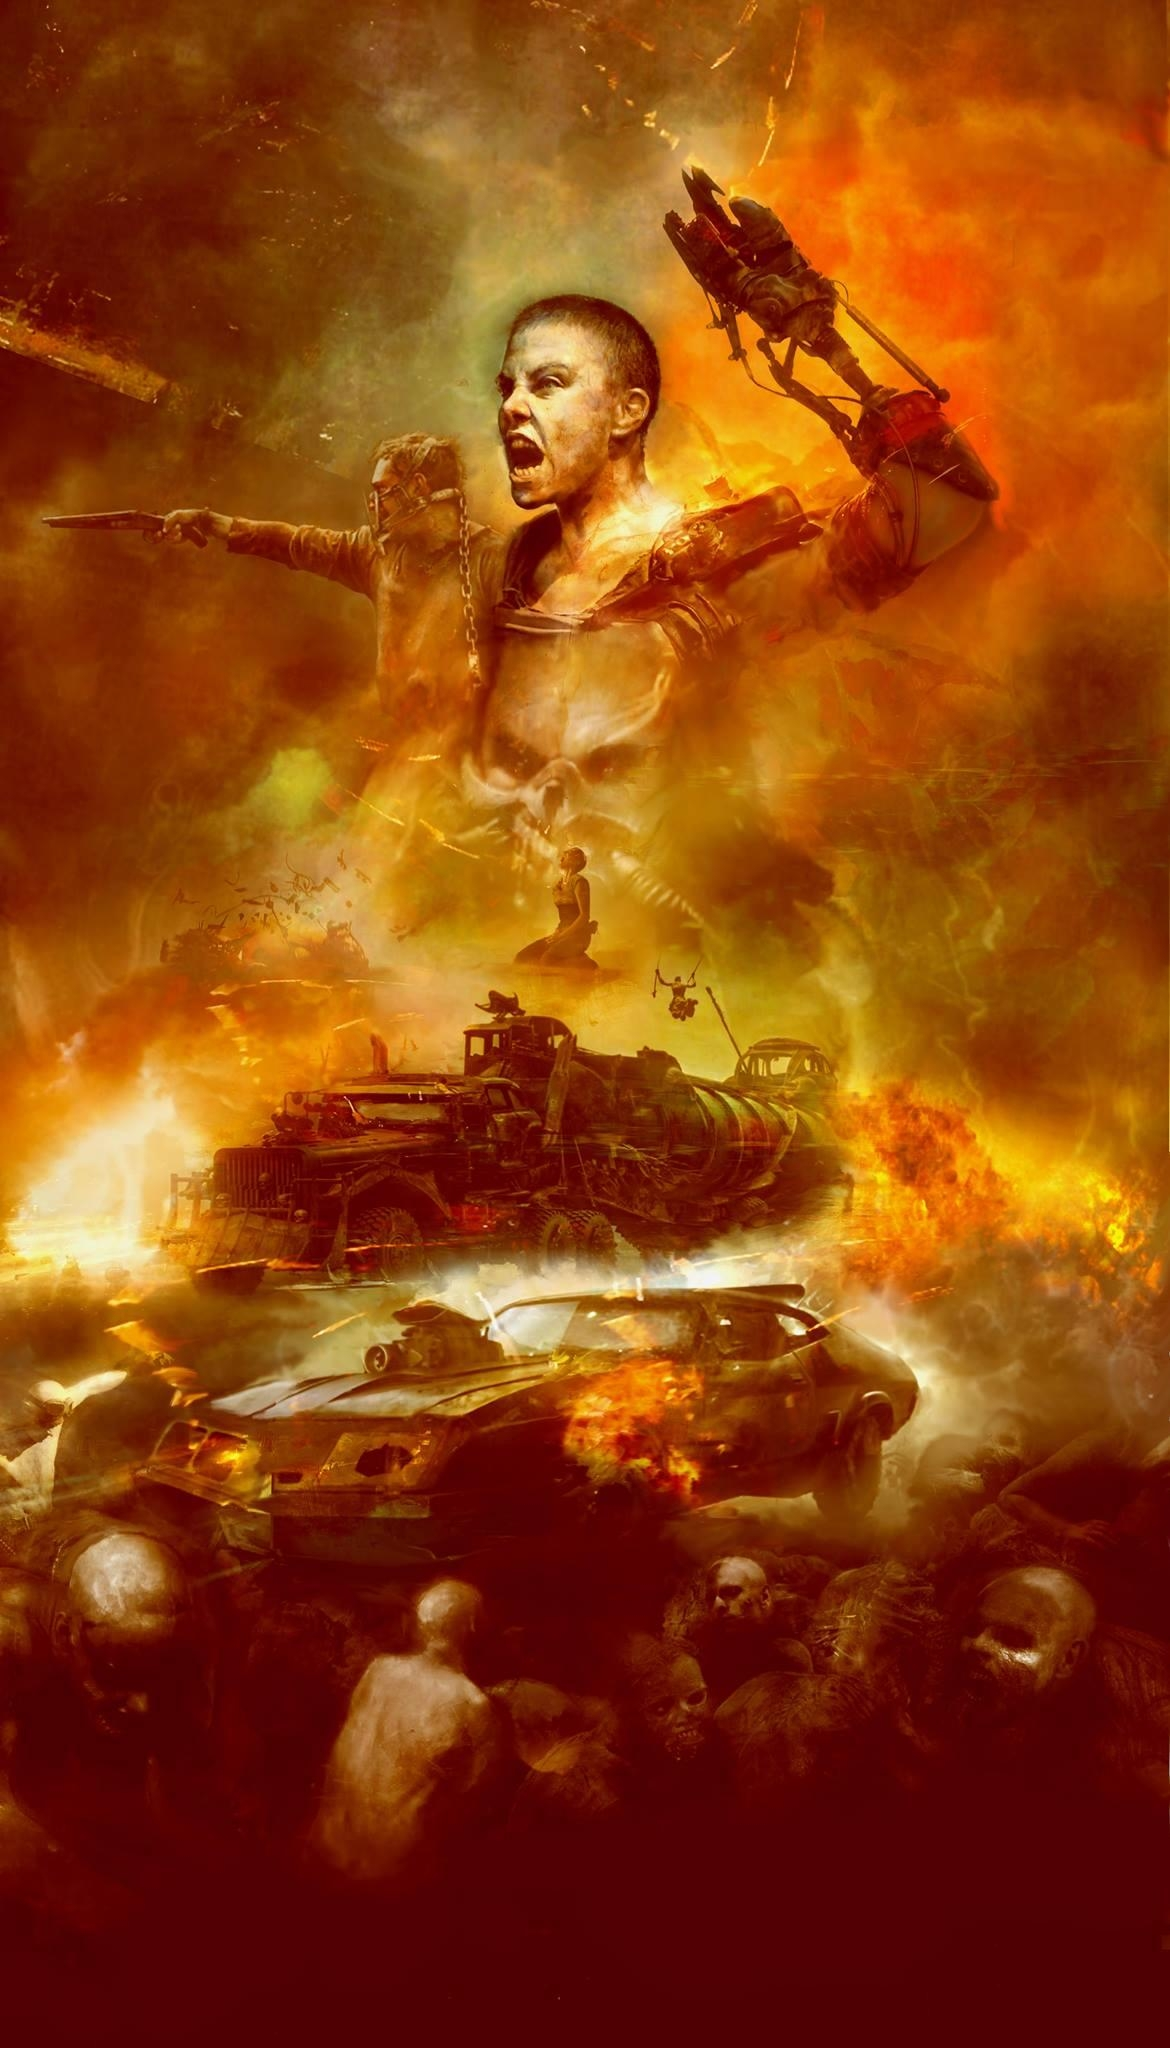 Mad Max Fury Road | Movie Posters | Pinterest | Mad Max Fury Road Pertaining To Art Prints To Hang On Your Wall (View 9 of 20)